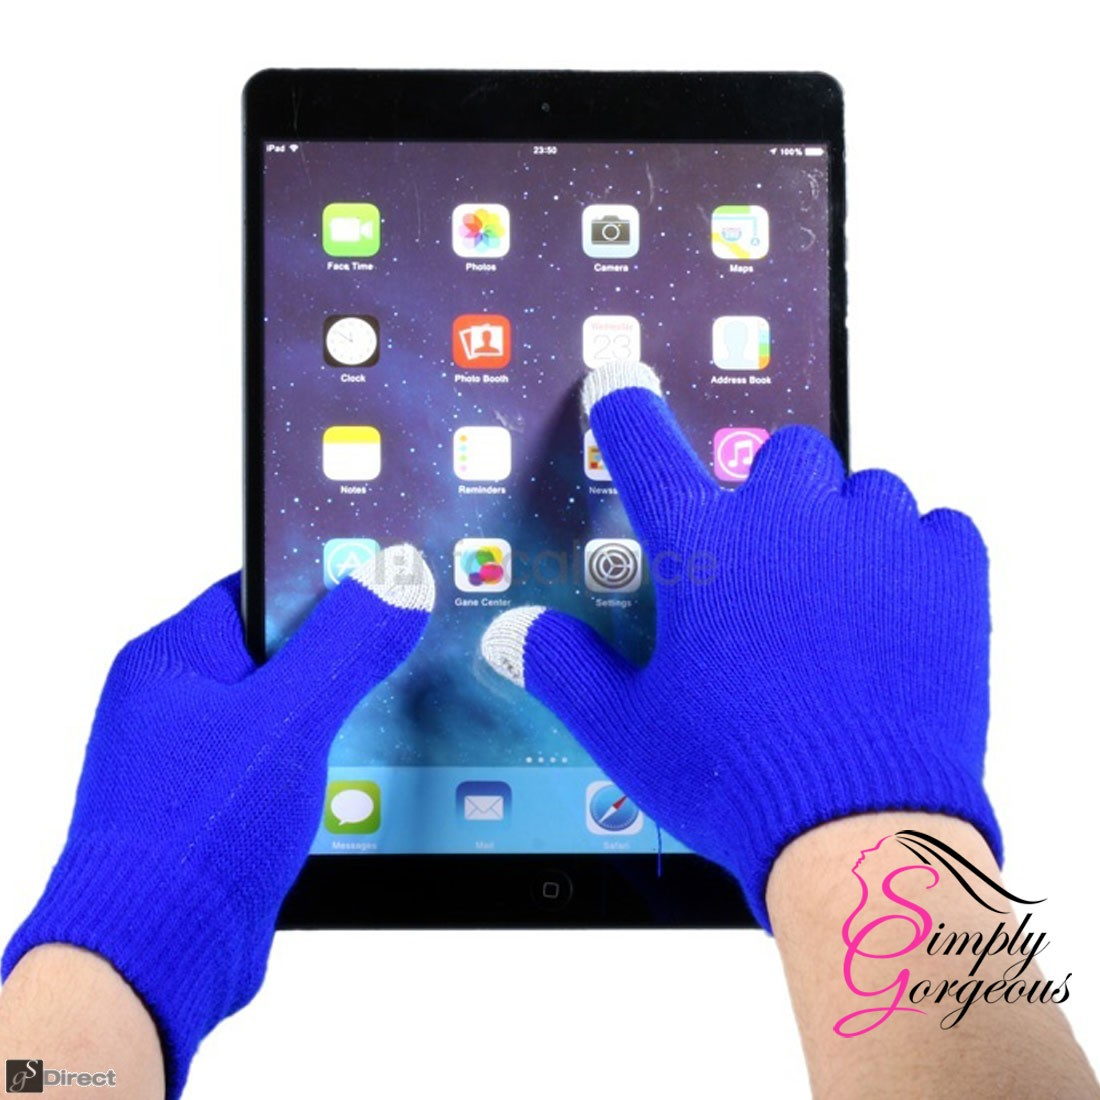 Unisex Winter Touch Screen Gloves For iPhone iPad Smart Phones, Tablets Etc - Dark Blue